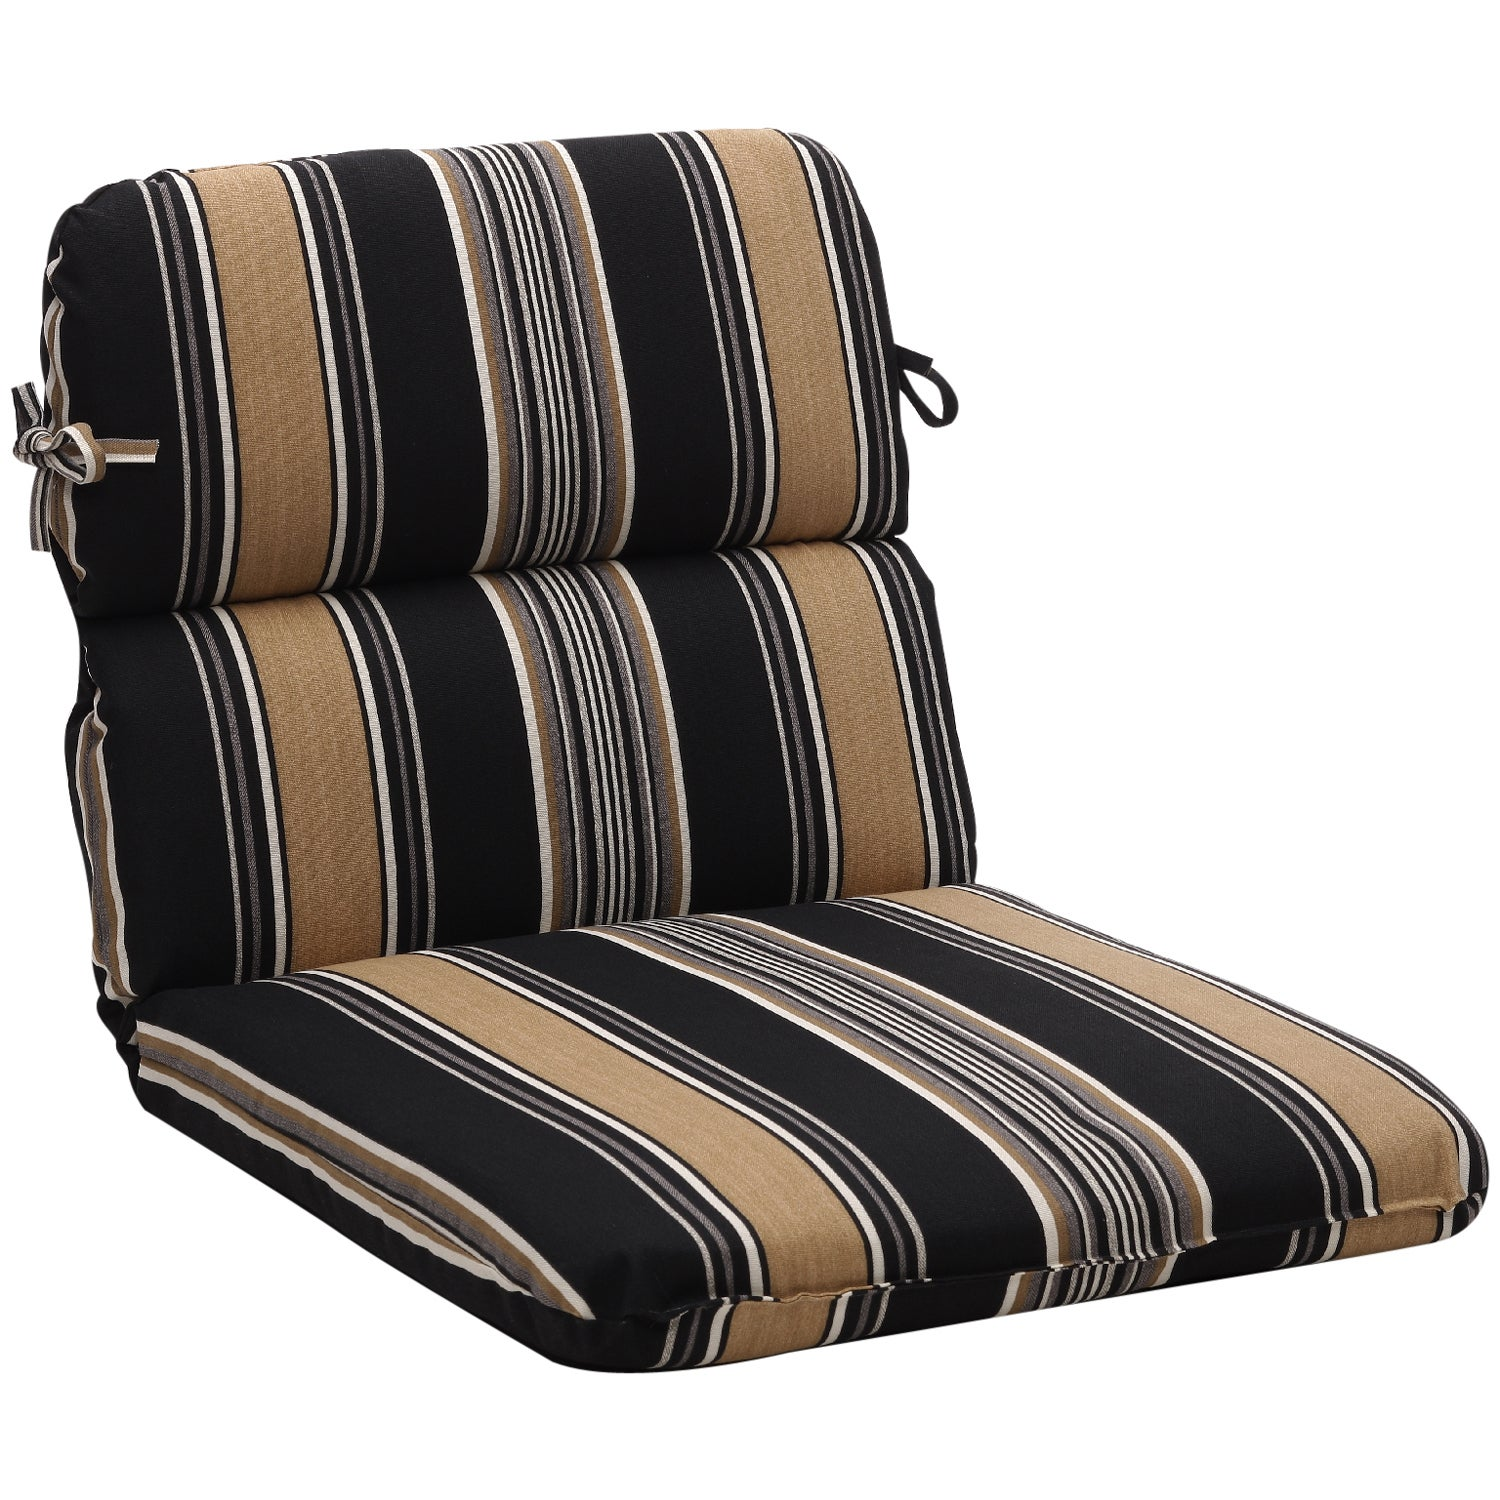 Rounded Black Tan Stripe Outdoor Chair Cushion Free